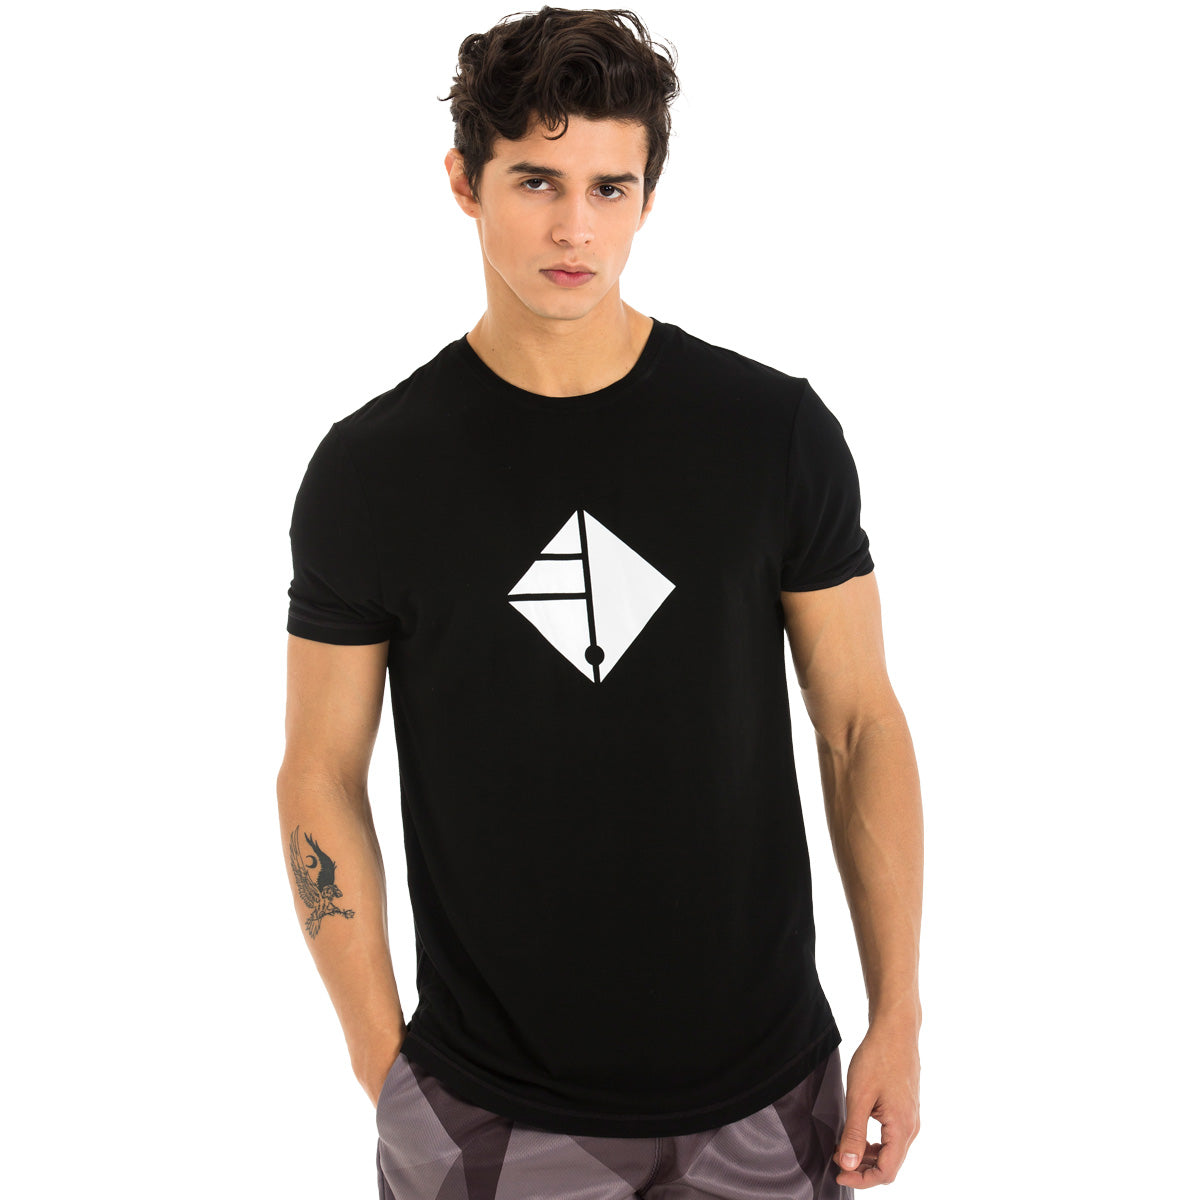 EMPOWERED MENS T SHIRT